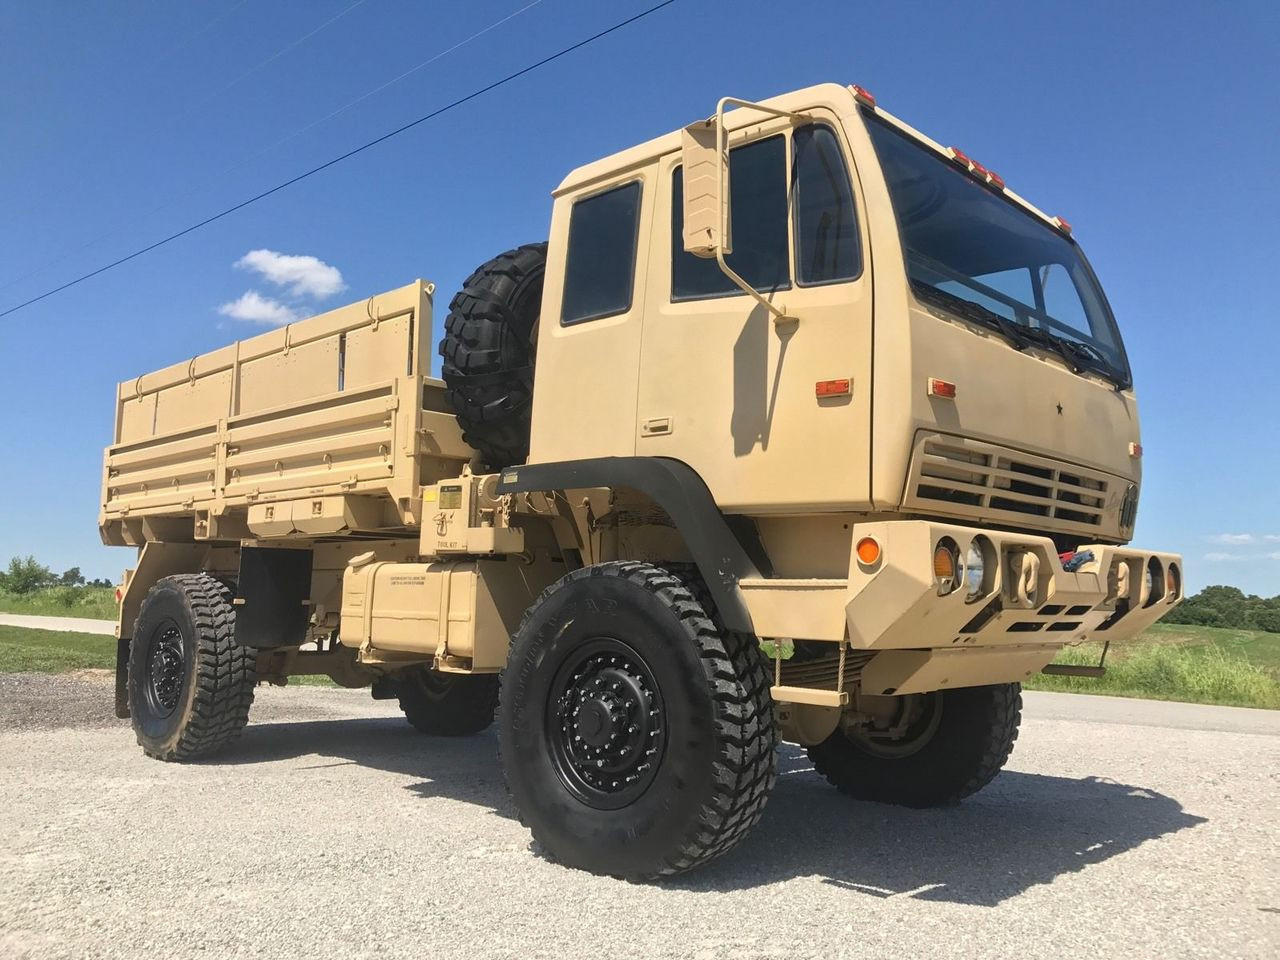 Military Vehicles For Sale >> SOLD 2000 STEWART AND STEVENSON M1078 MILITARY 4x4 LMTV FMTV TRUCK EMP UNIMOG - Midwest Military ...